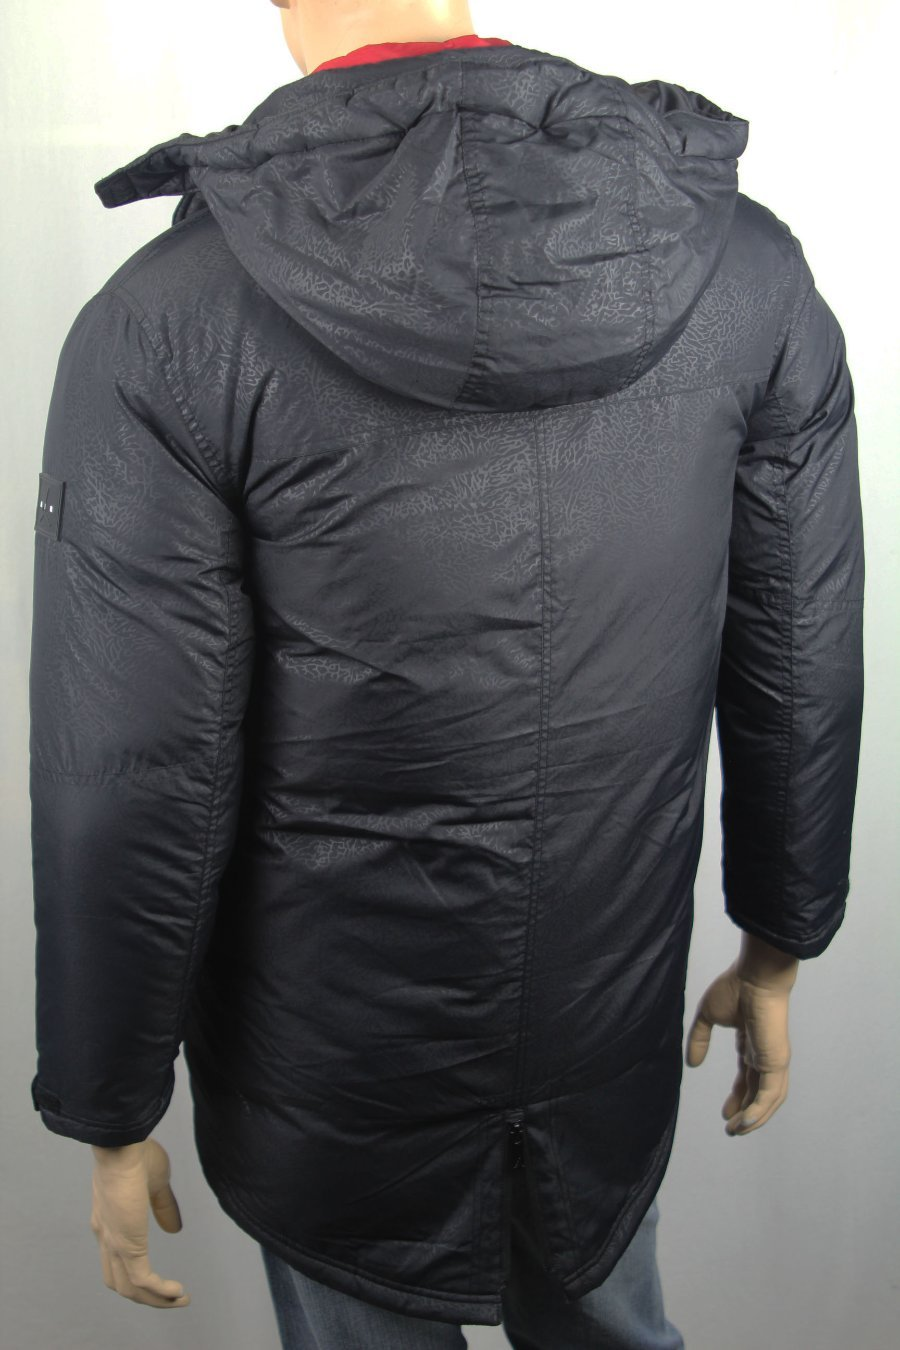 7e797c06cb Scudo Nike Hyper Elite Basketball Hooded Jacket * ~ * ~ ~ * ~ * Nuovo con  tag * ~ * ~